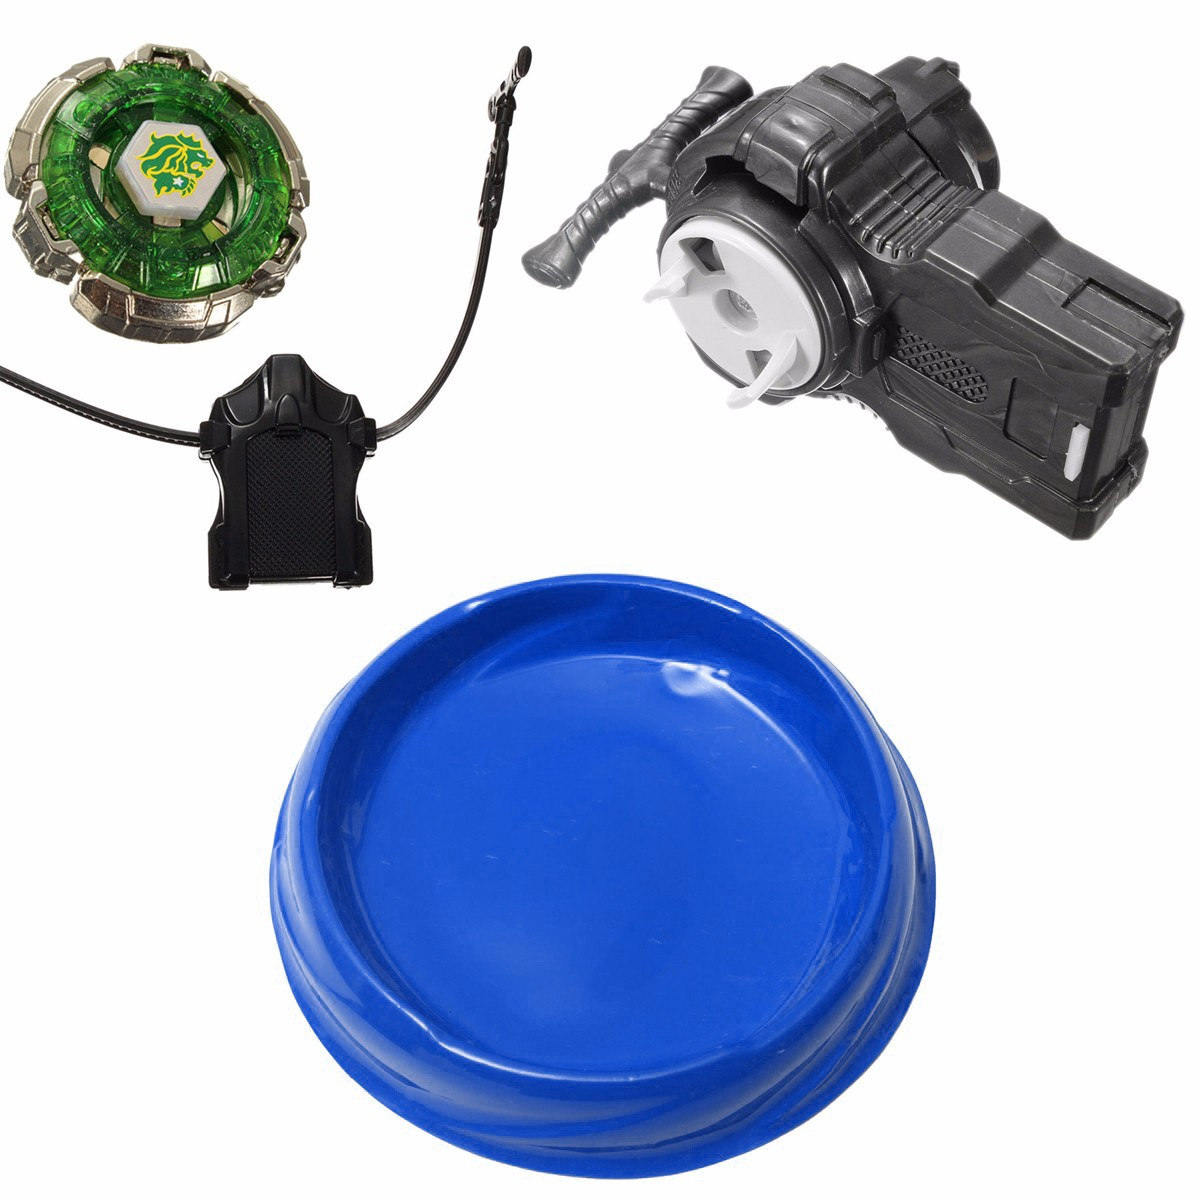 Lot 2Pcs Kids Children's Toys Beyblade Stadium Multi-function Battle Top Plate 7.6'' Blue